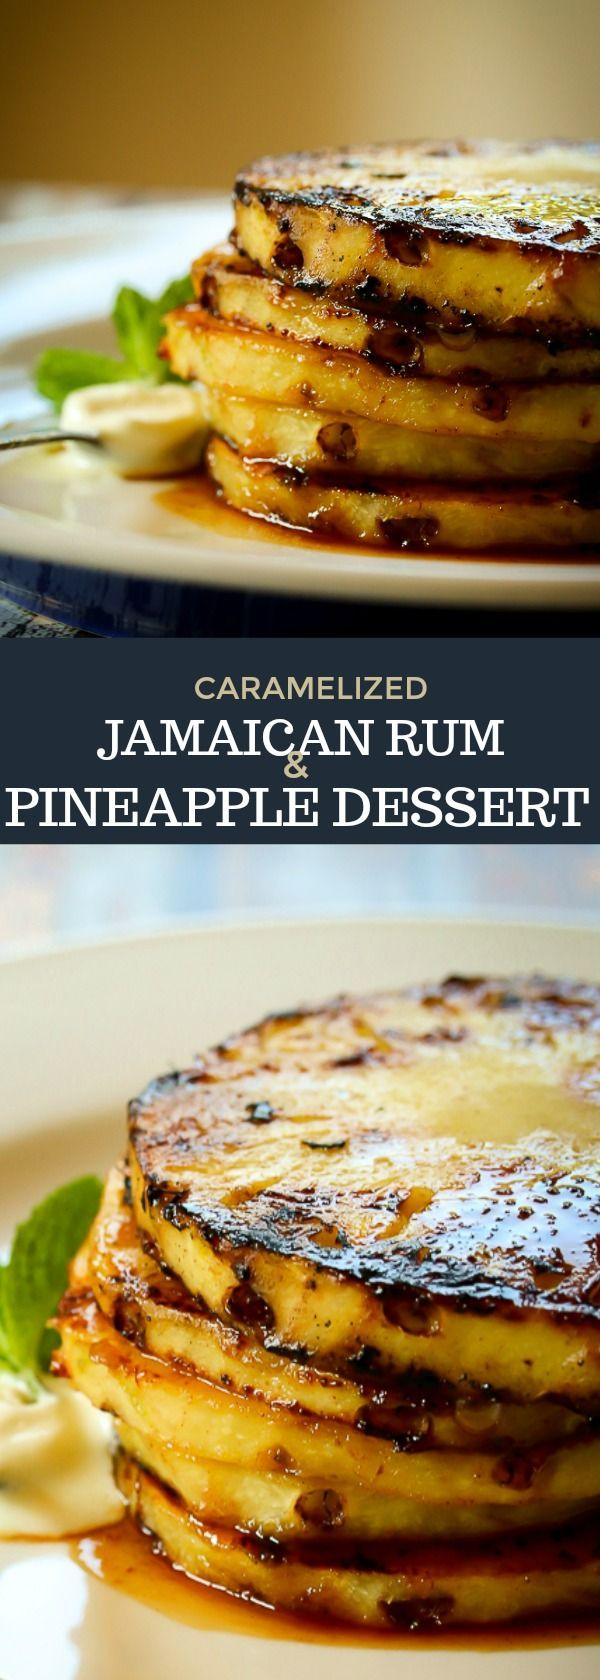 This Caramelized Jamaican Rum & Pineapple Dessertis so easy to make and bursting with tropical flavours. Great on its own, or on ice cream, or as a topping for cakes. Gluten-Free, Sugar-Free. Family-Friendly. Foods from Africa. Afro-fusion Cuisine.